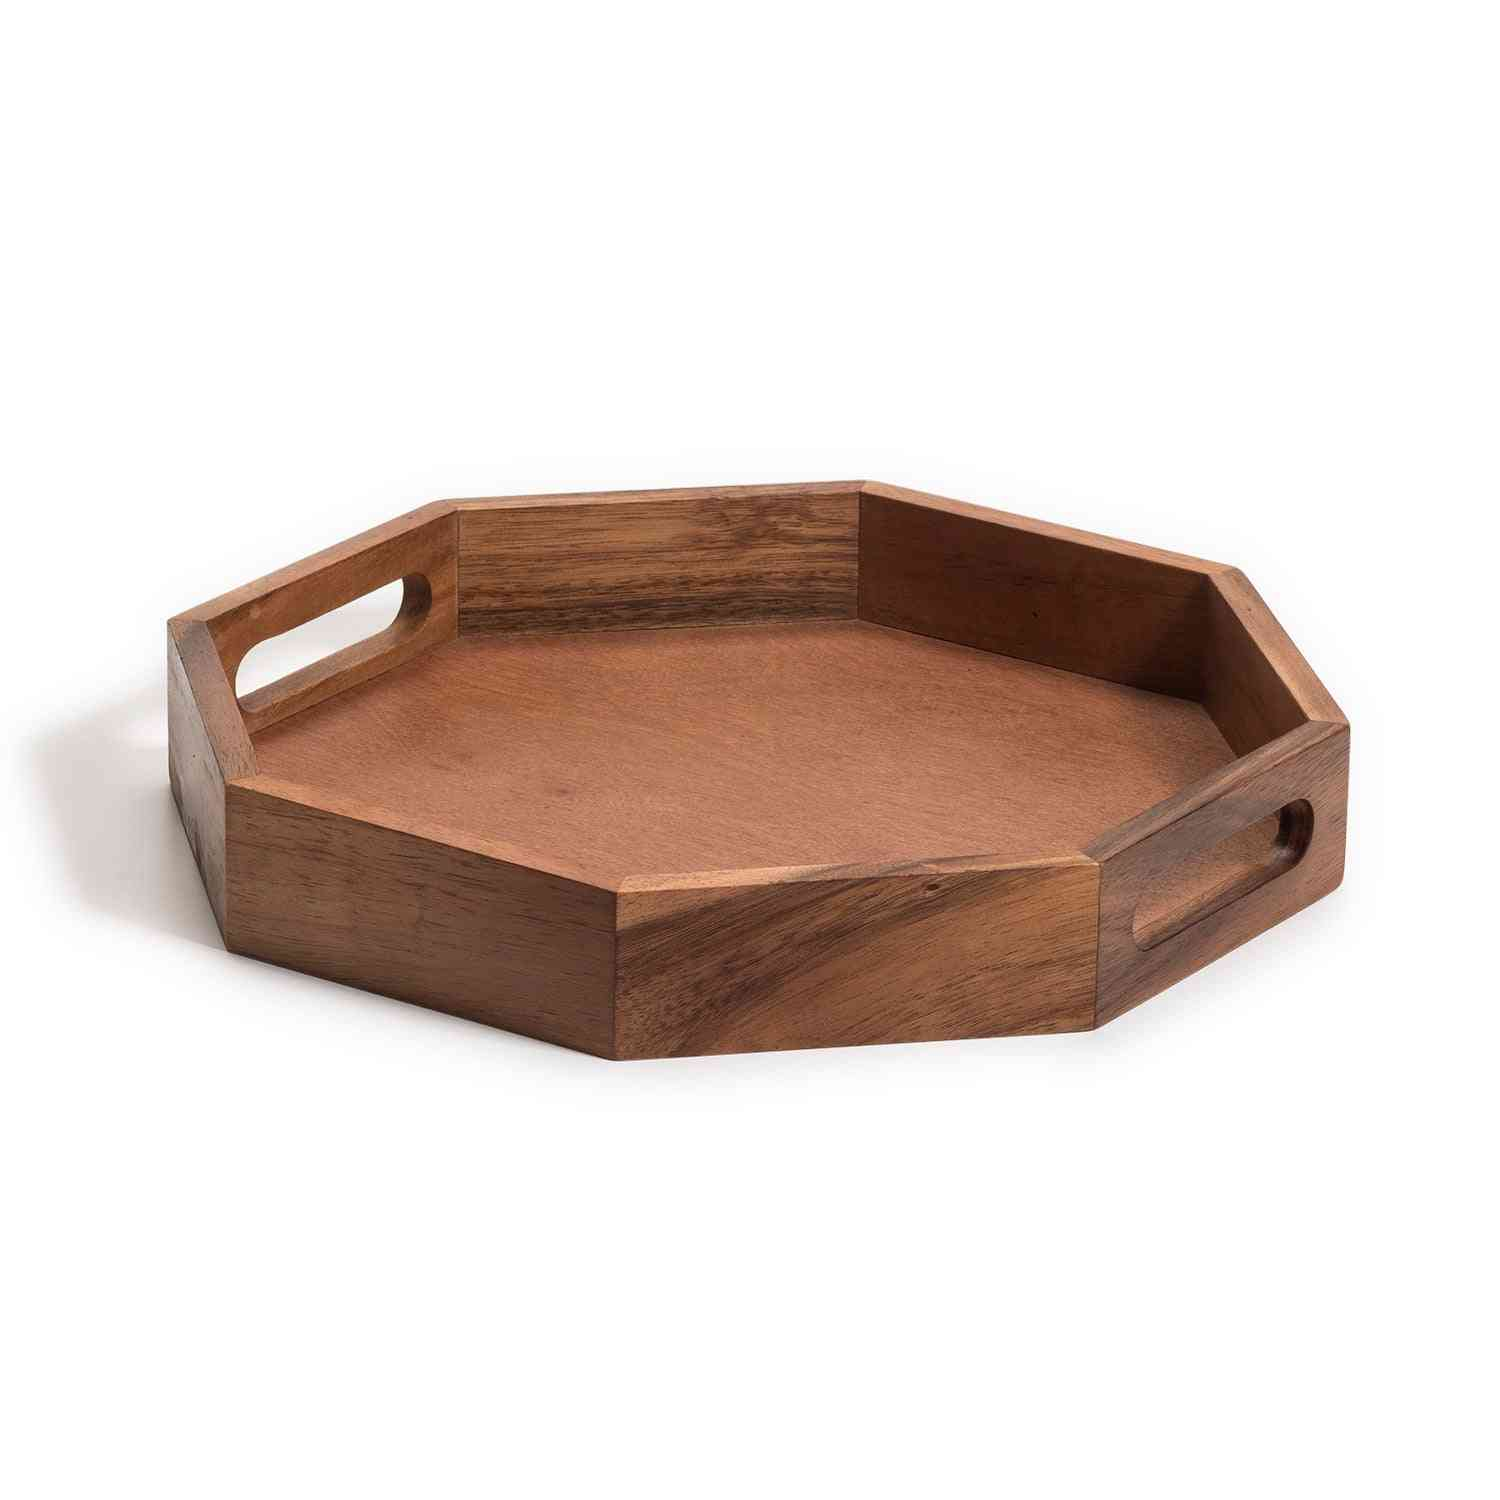 Octagon Wood Charcuterie/serving Tray 13